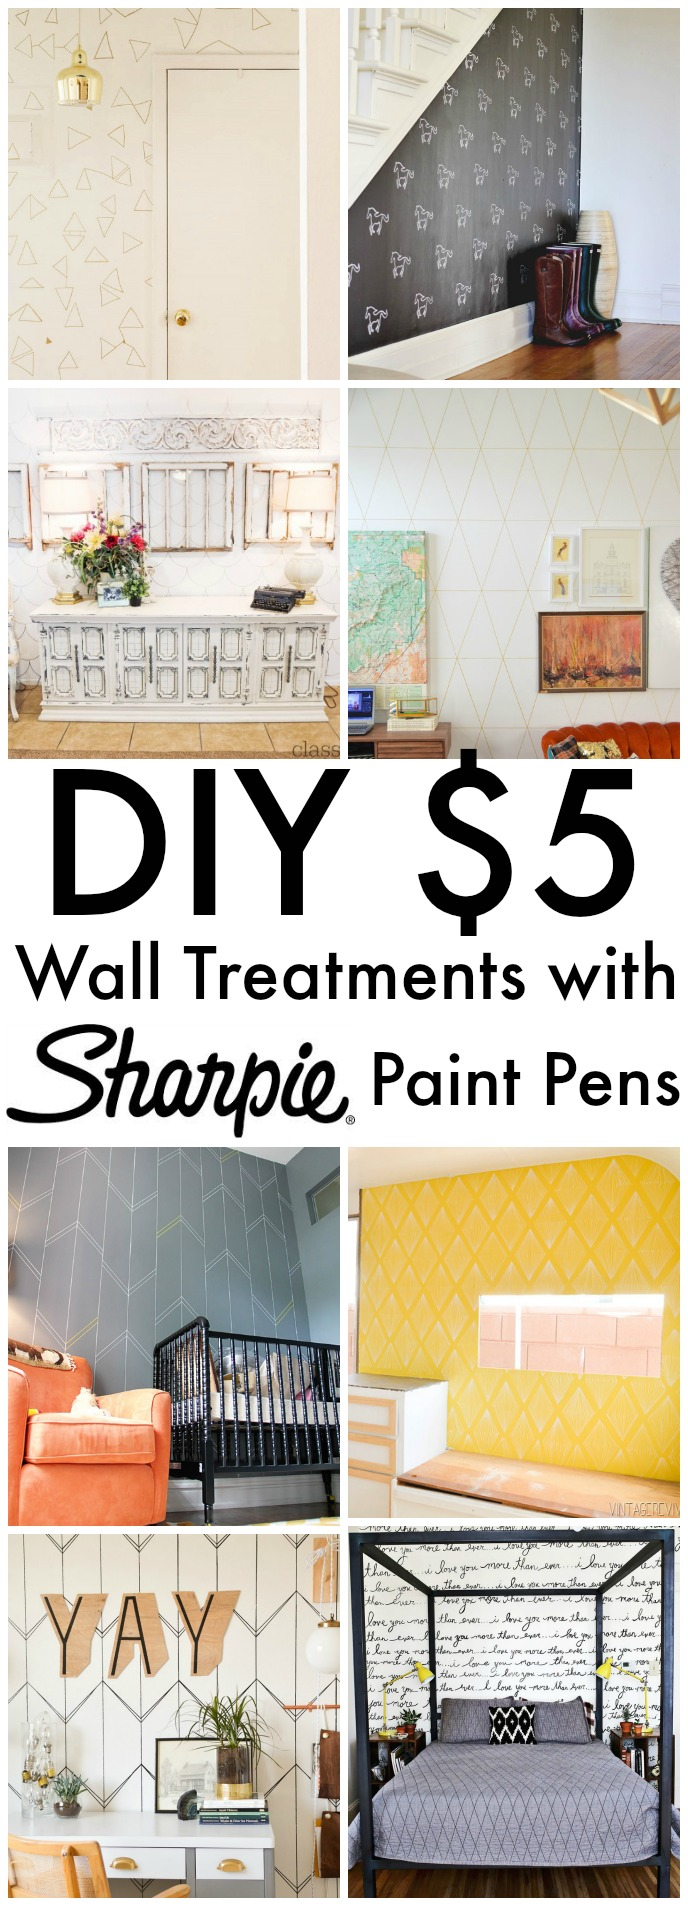 $5 Wall Treatments with Sharpie Paint Pens